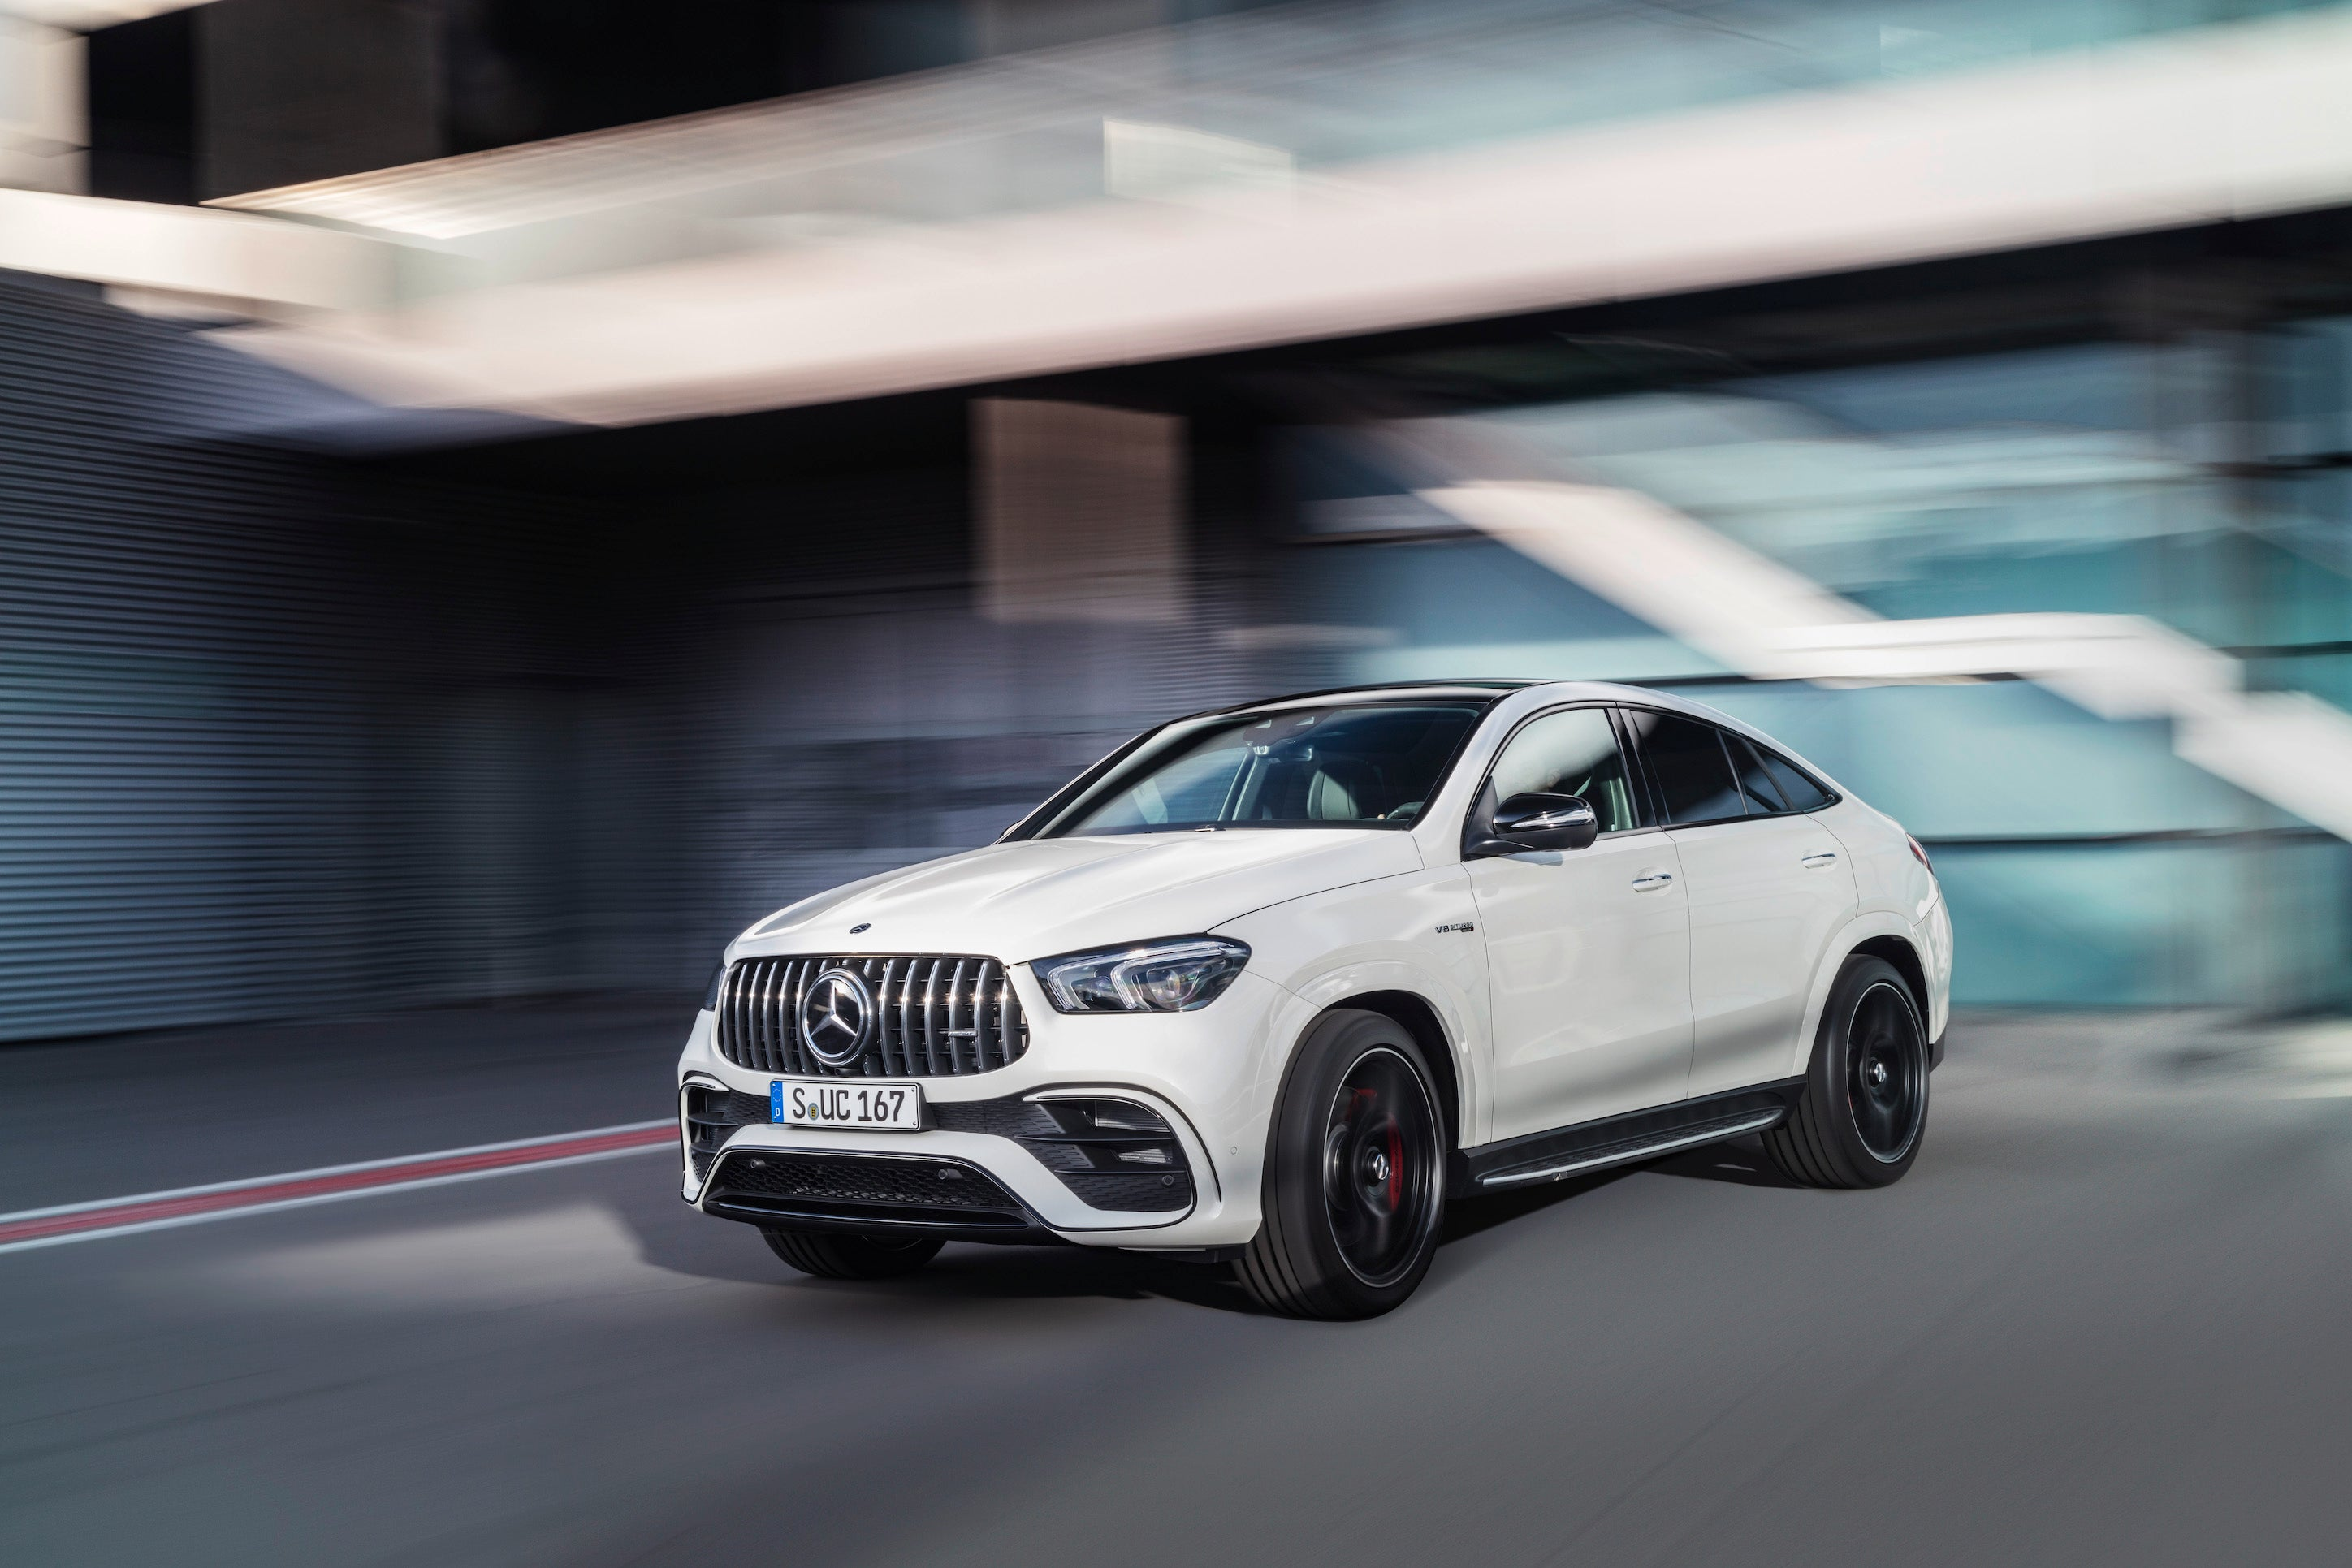 Mercedes-AMG GLE 63 S 4MATIC+ Coupé 04